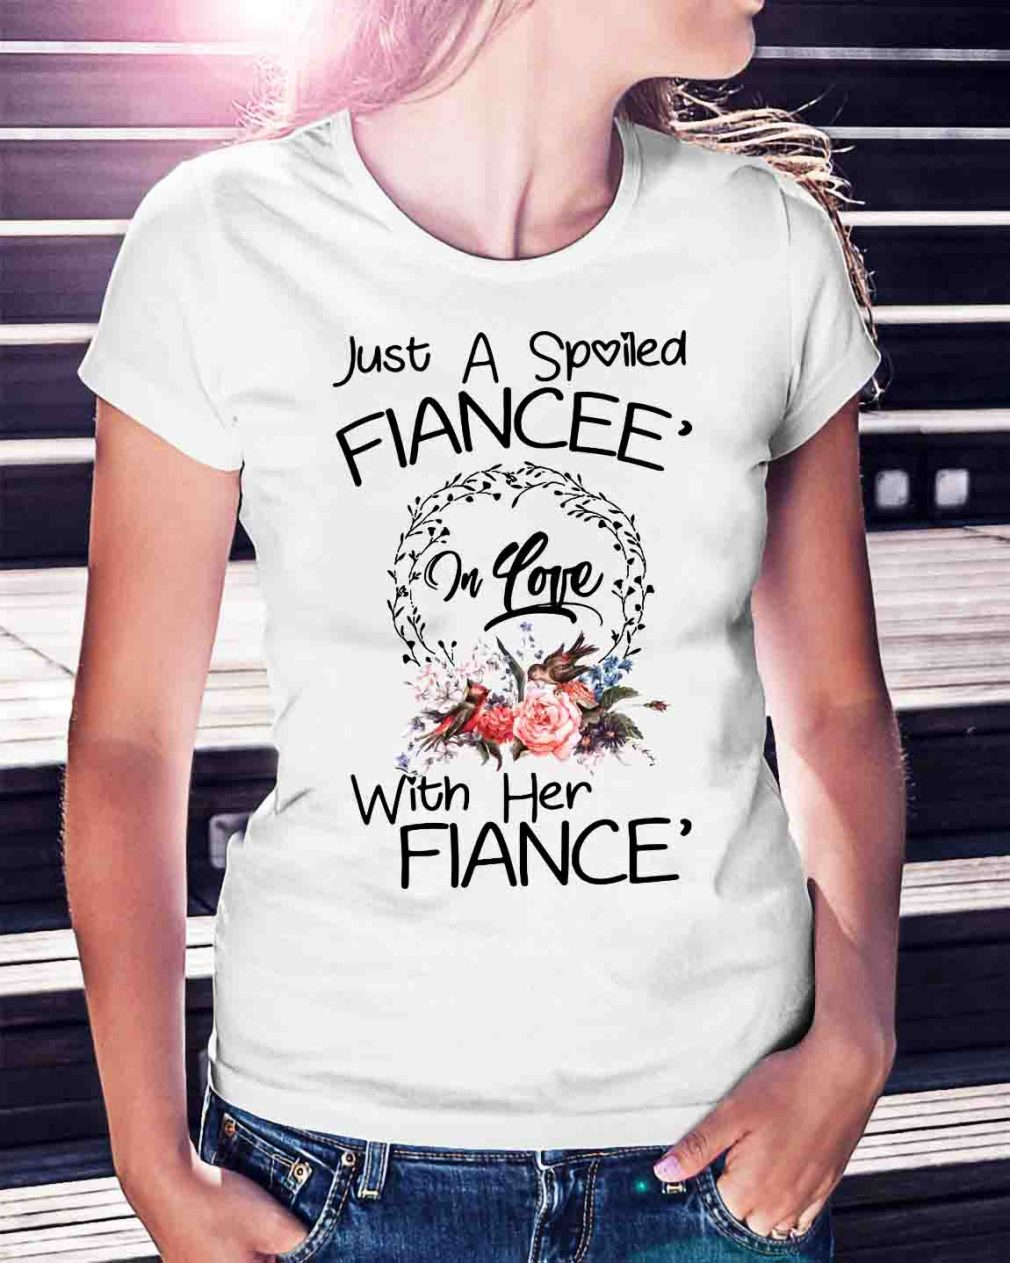 Just a spoiled Fiancee' in love with her Fiance' shirt